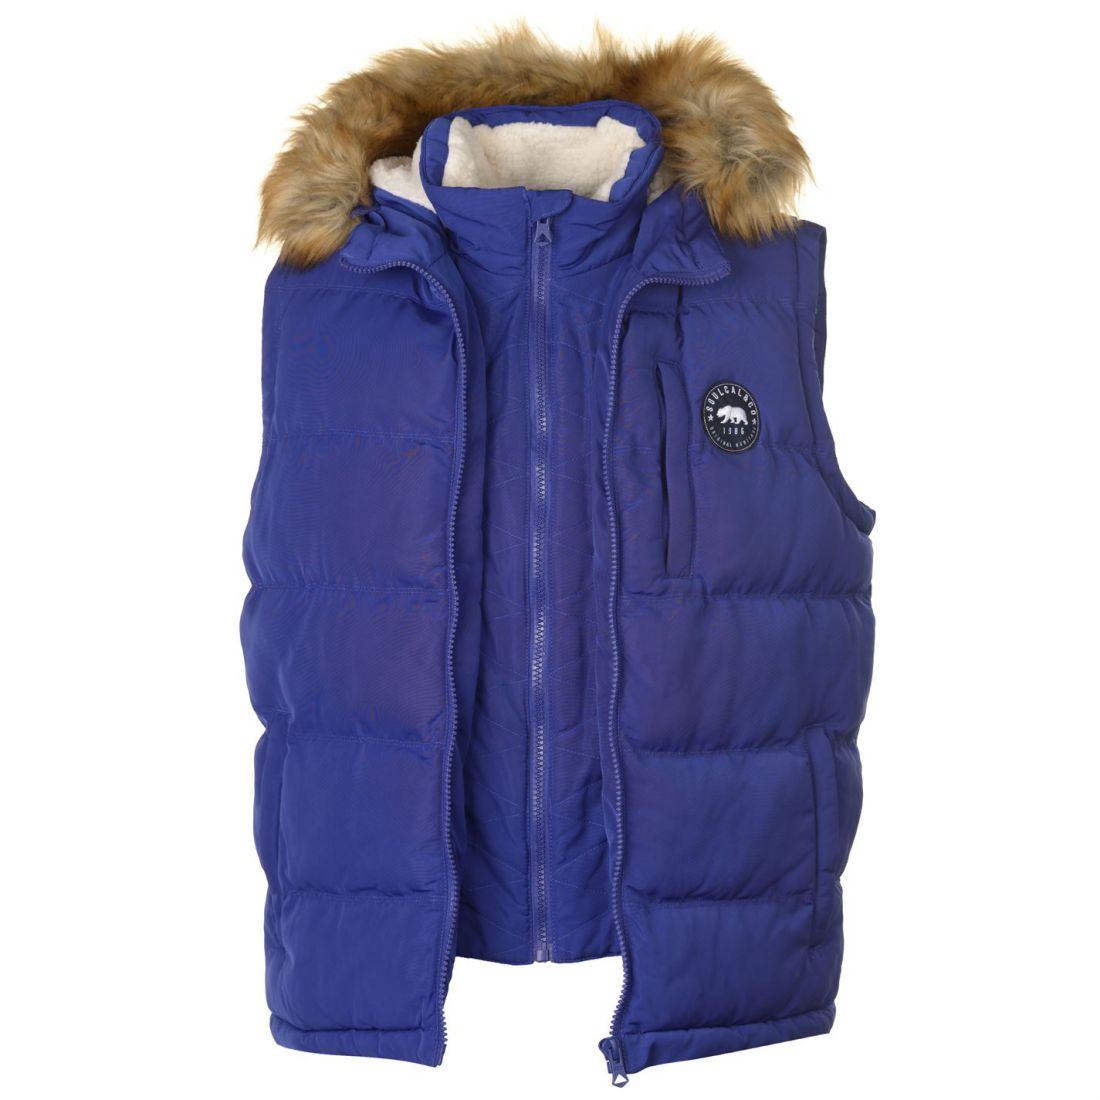 Mens SoulCal Cal 2 Zip Gilet Sleeveless New   up to 50% off